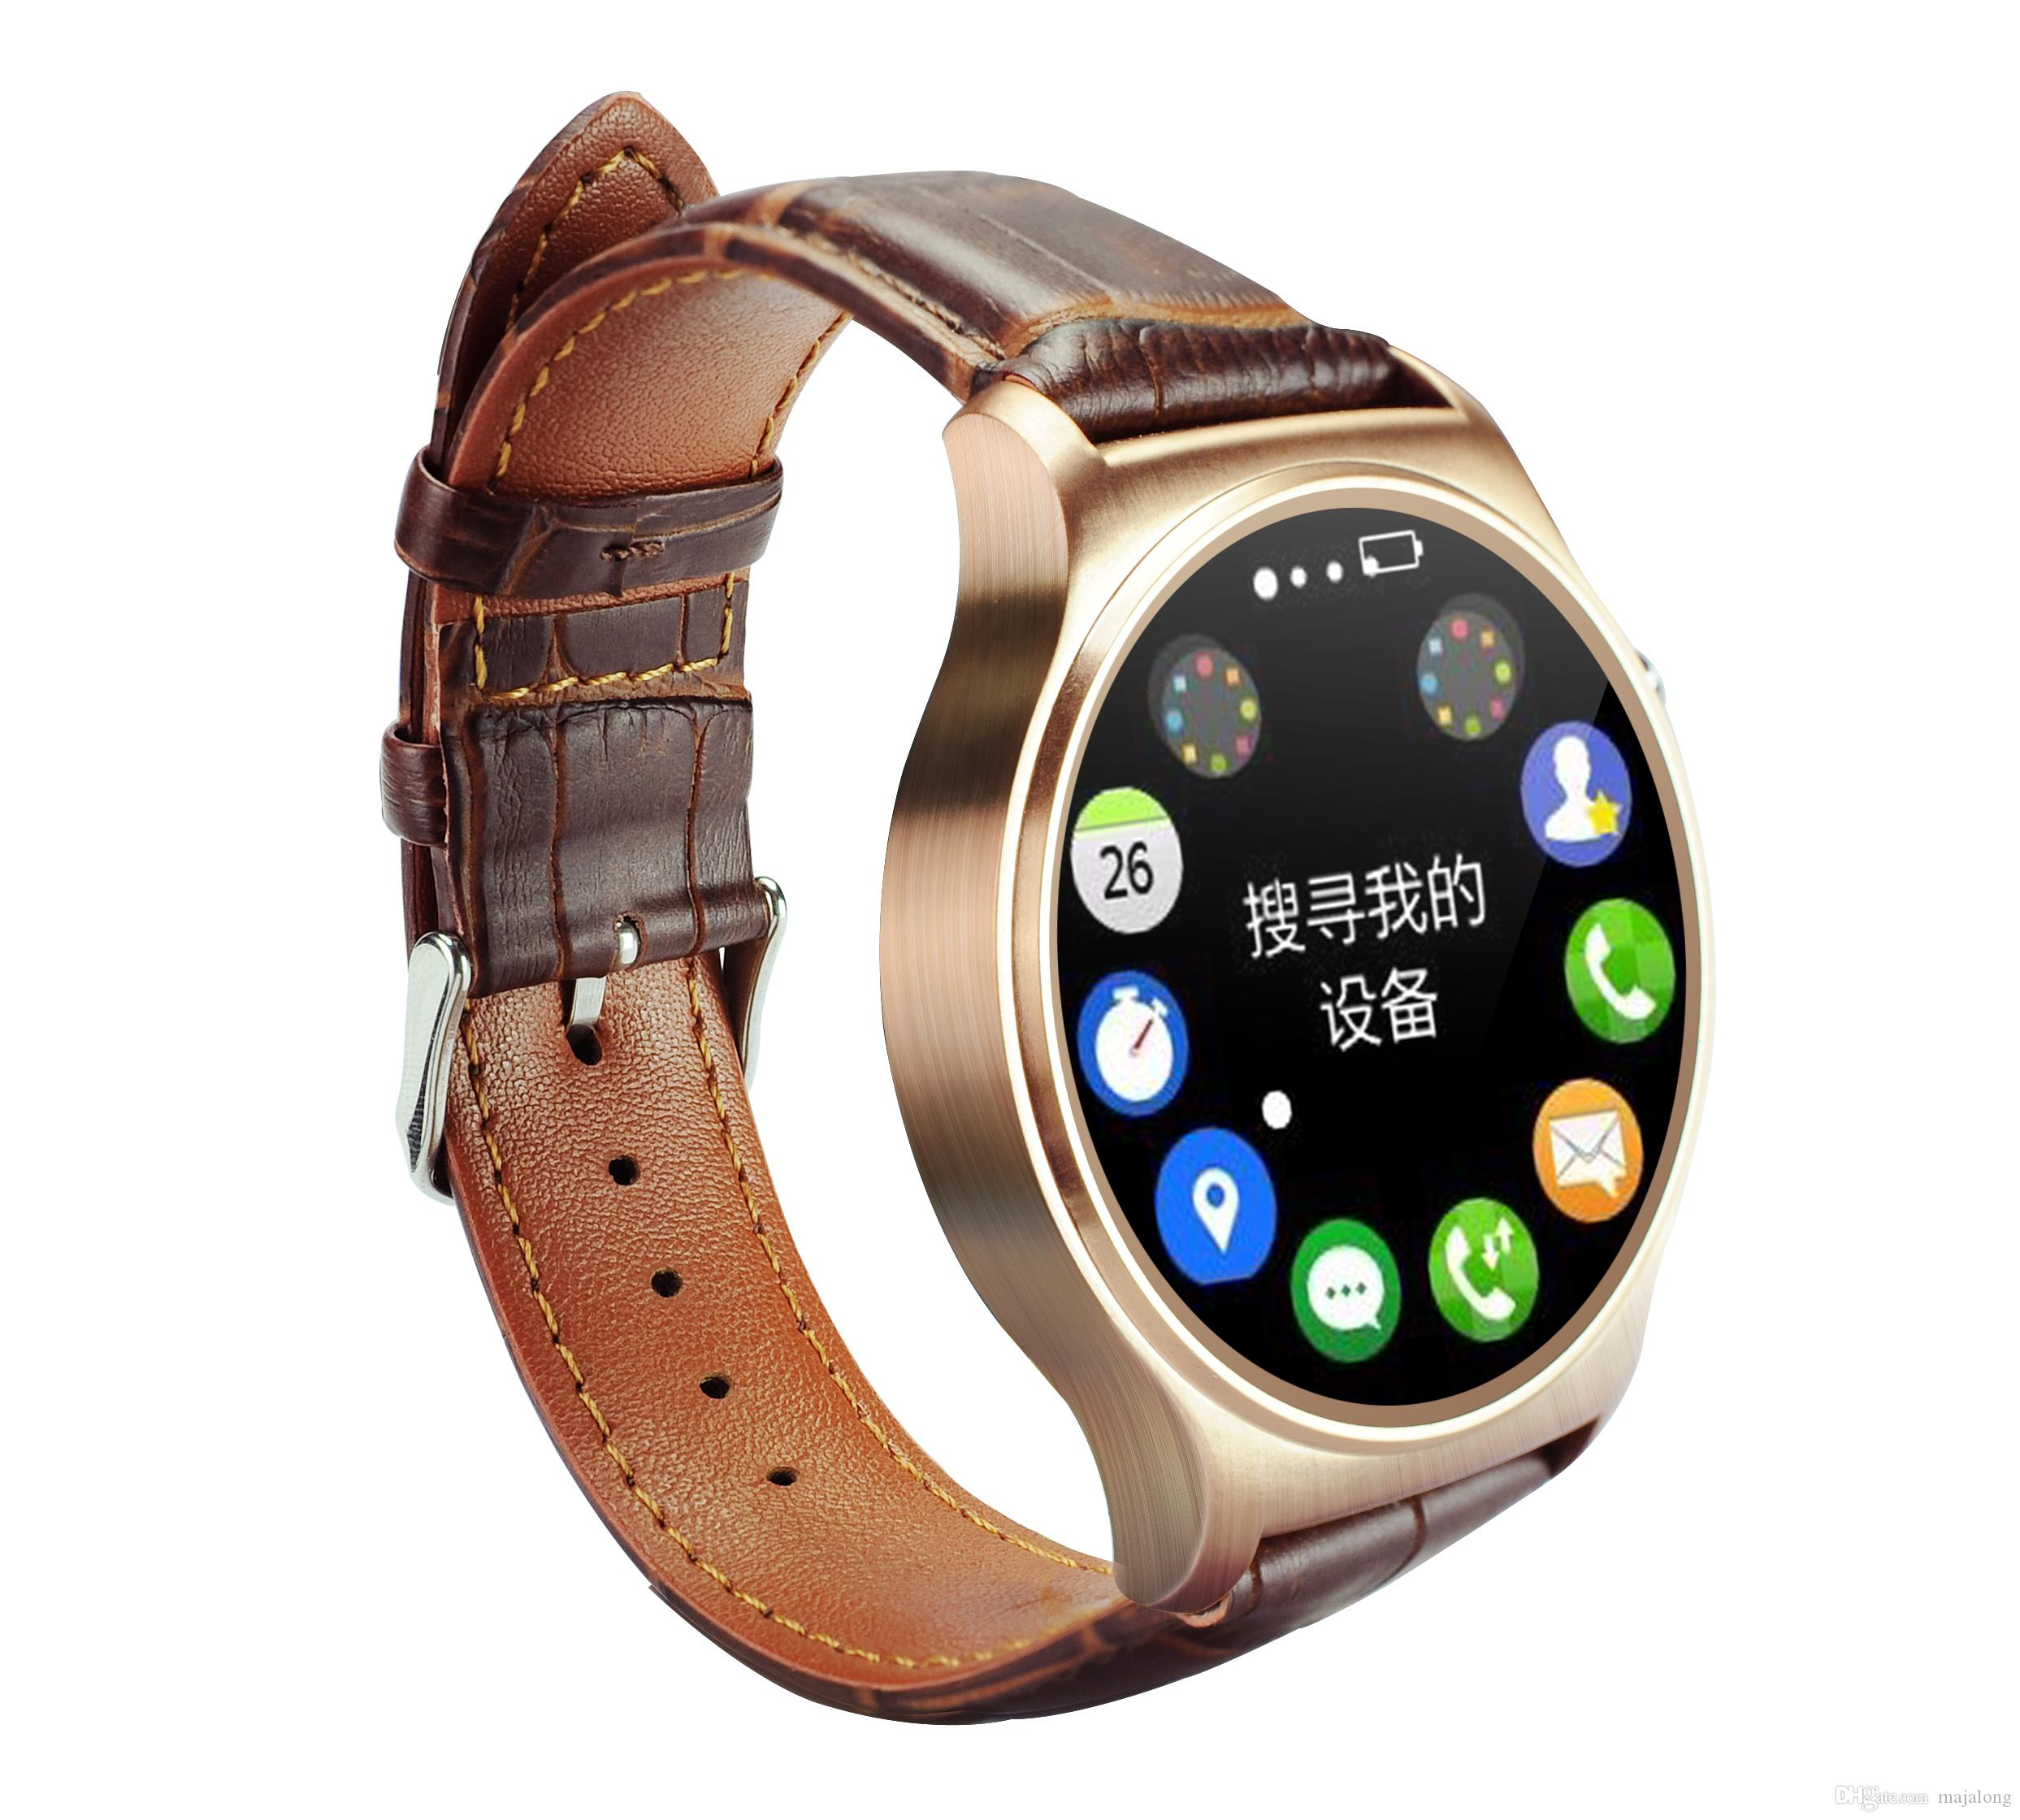 phone huawei orig wear mobile good another a classic article opportunity for review android watches watch battery missed but